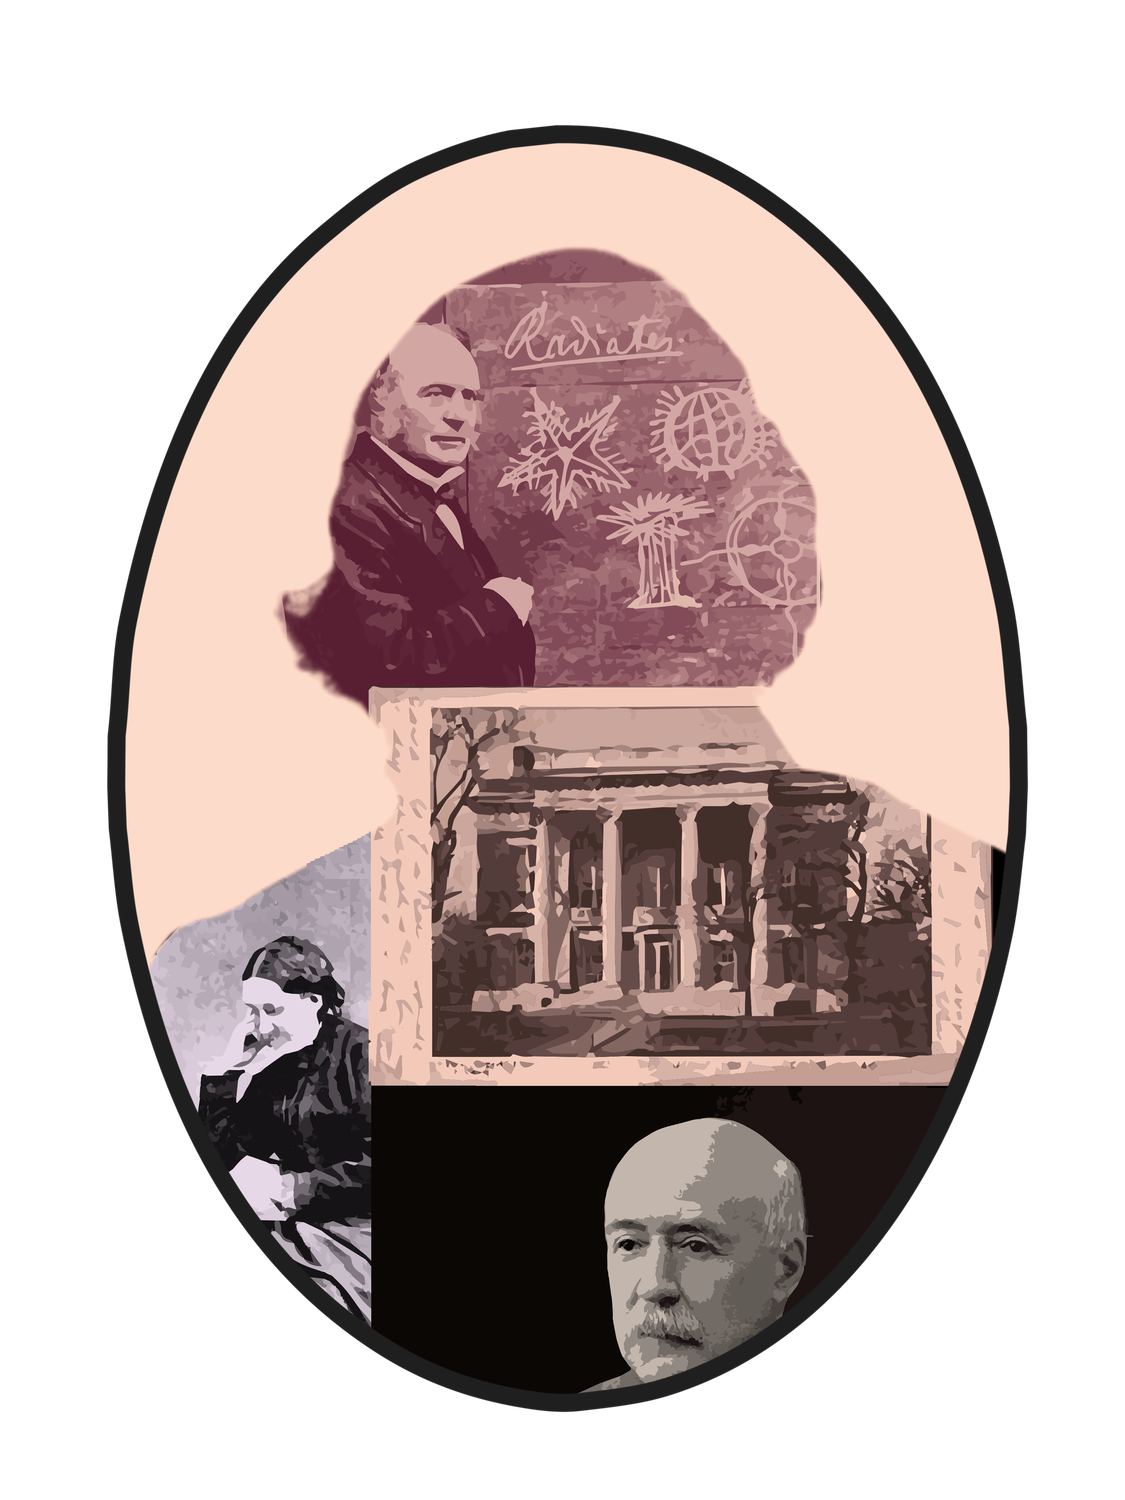 A portrait of Louis Agassiz, with photographs courtesy of the Peabody Museum of Archaeology and Ethnology, Harvard University and the Schlesinger Library, Radcliffe Institute, Harvard University.